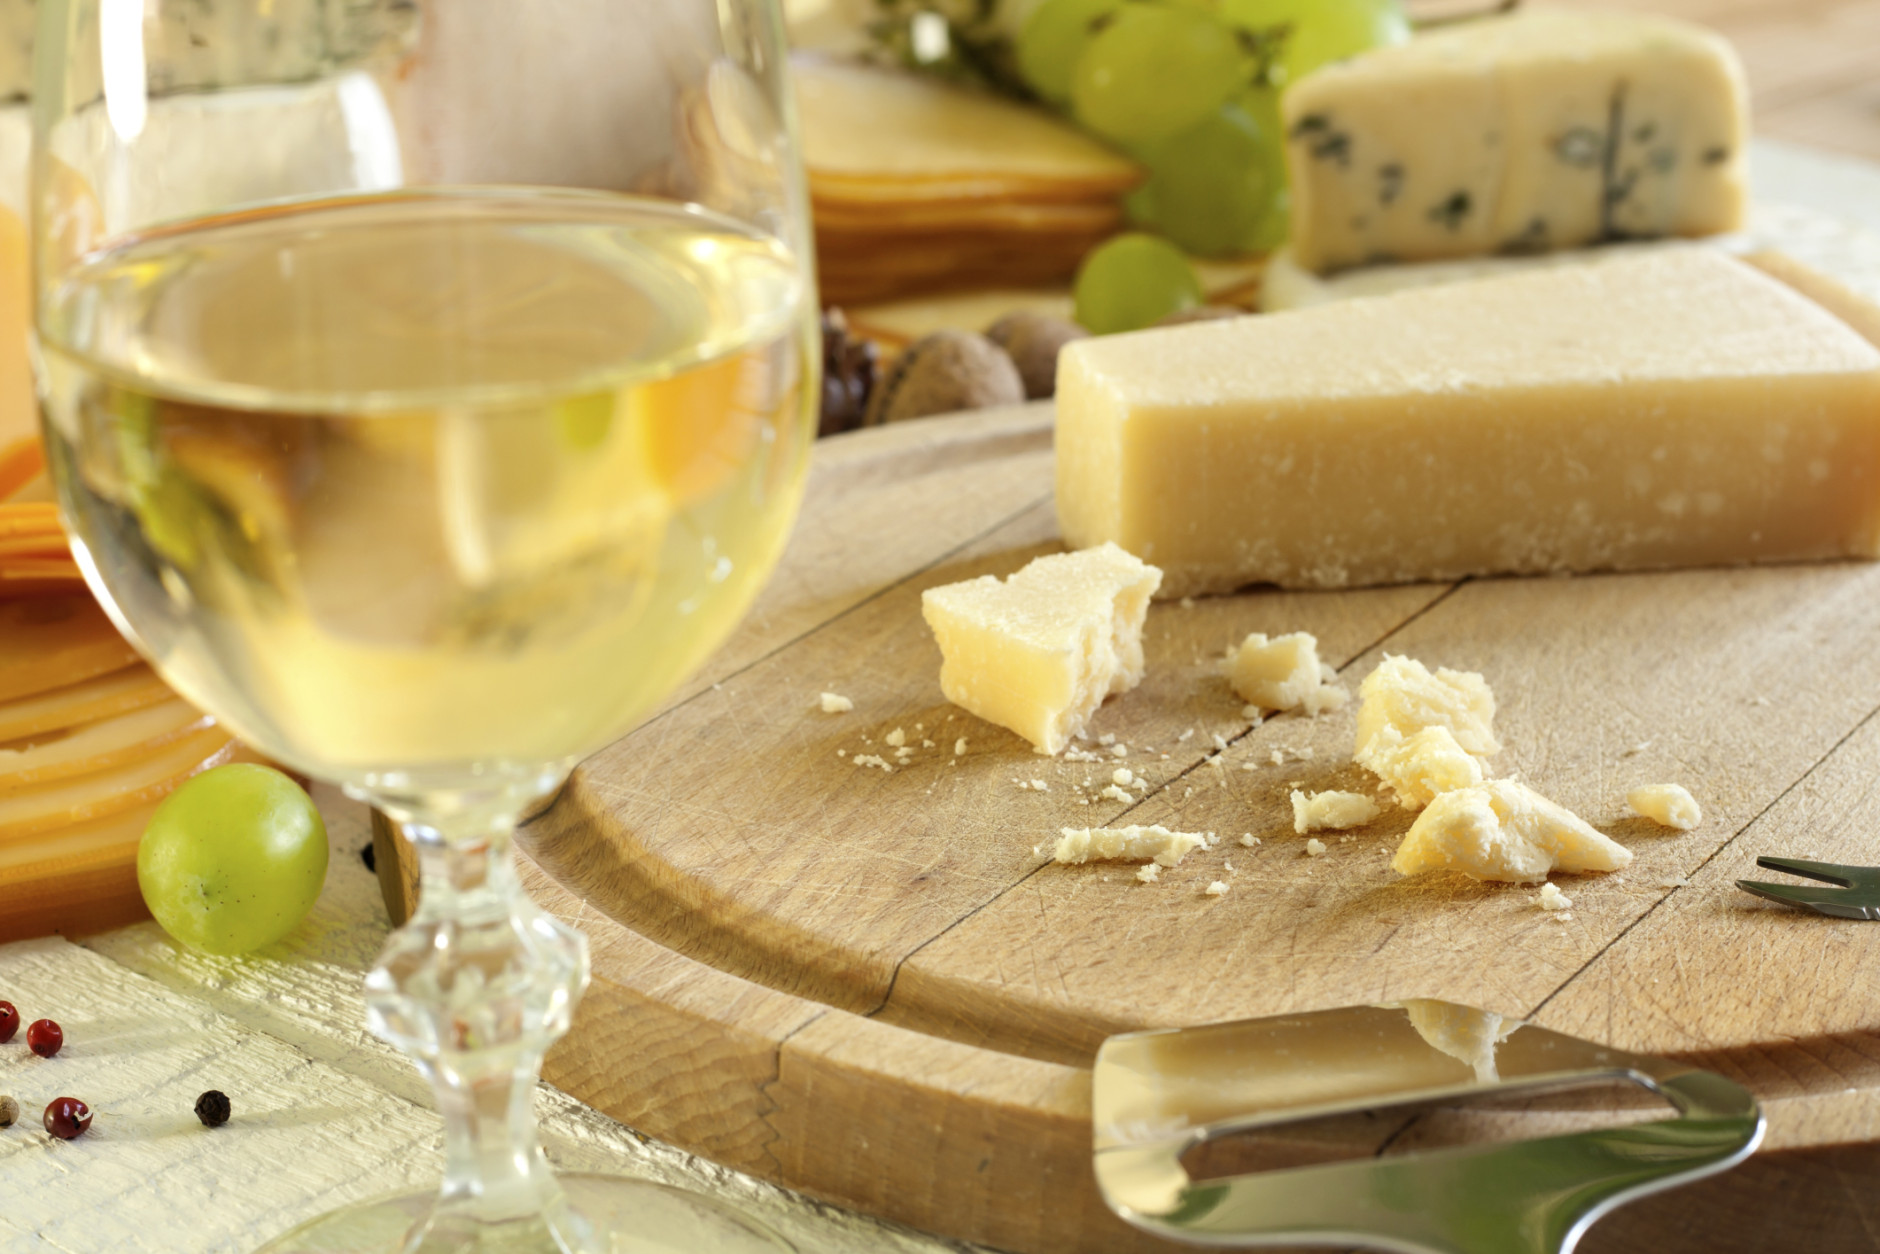 Middleburg vineyard will make its own cheese